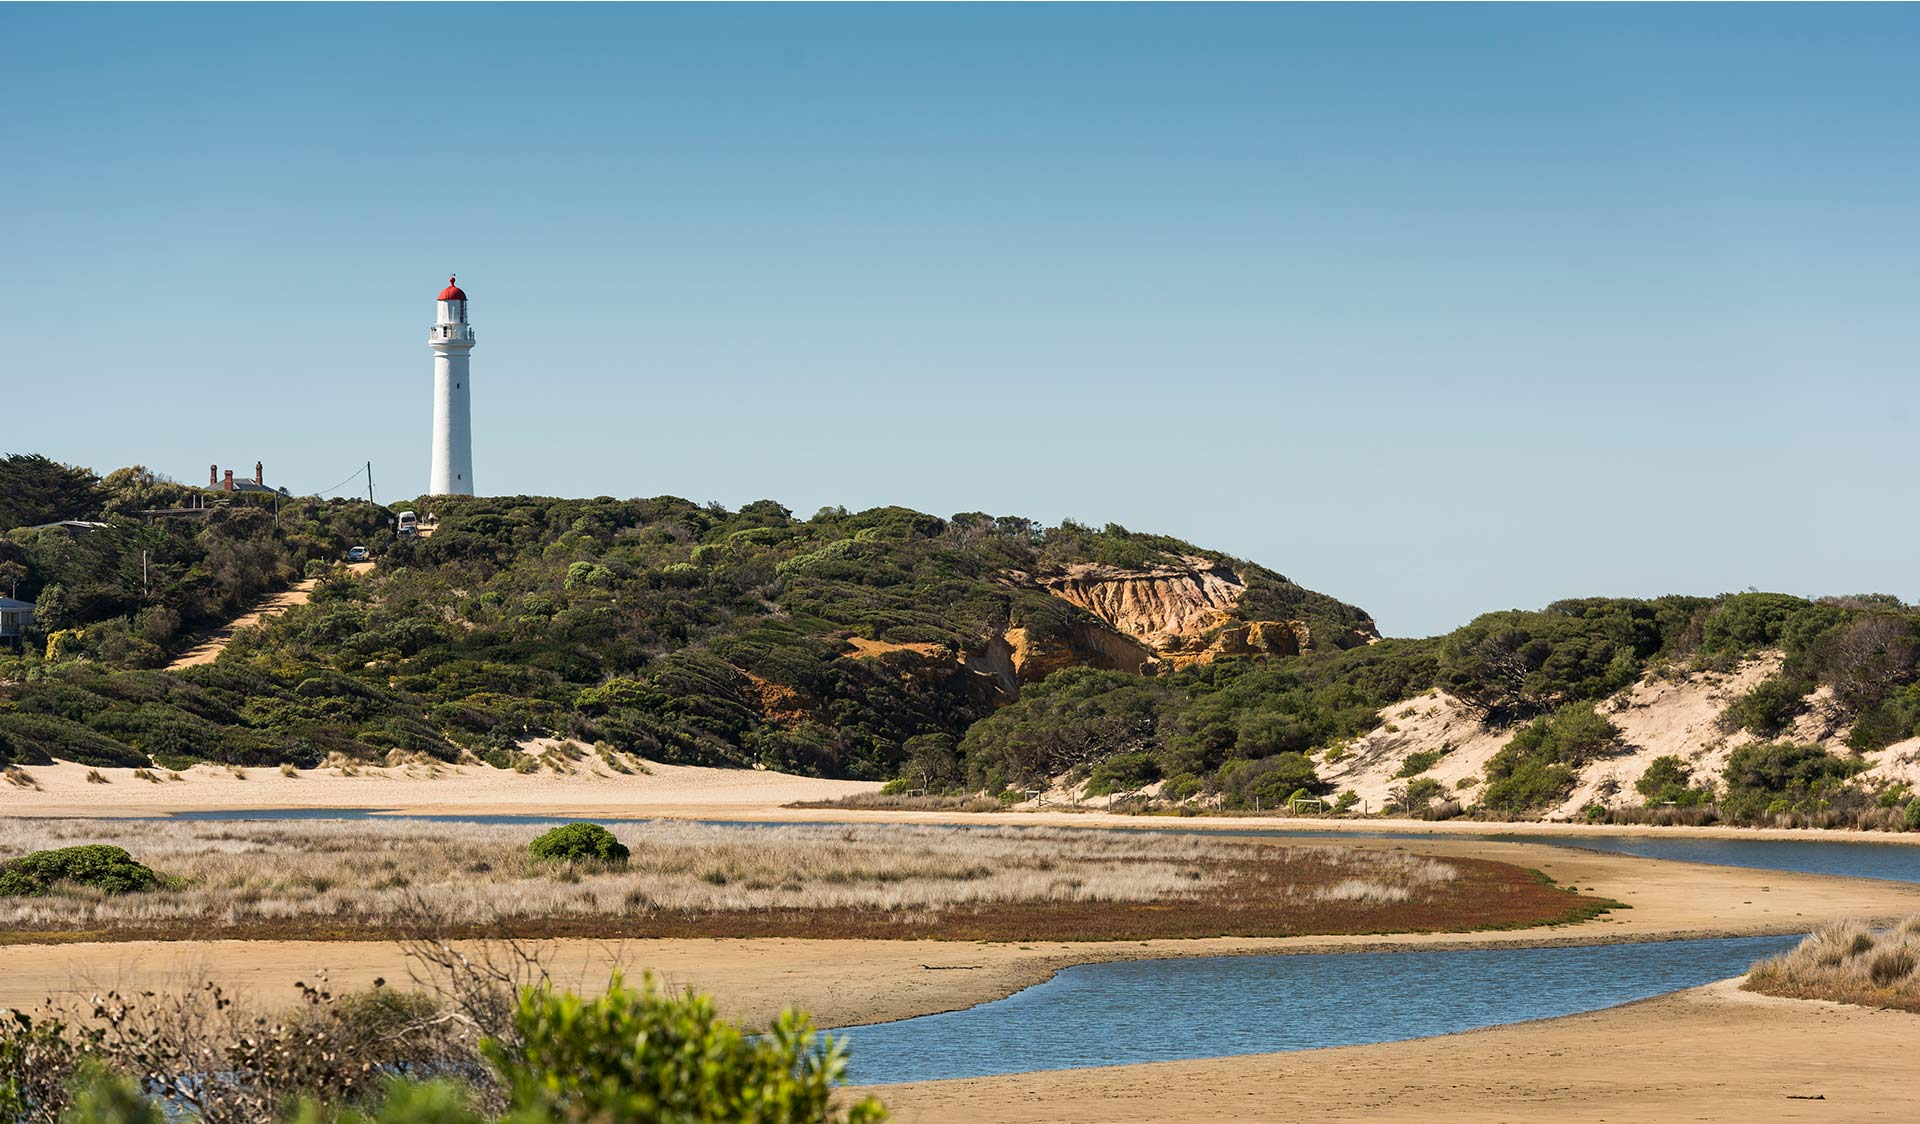 The famous Split Point Lighthouse at Airey's Inlet.